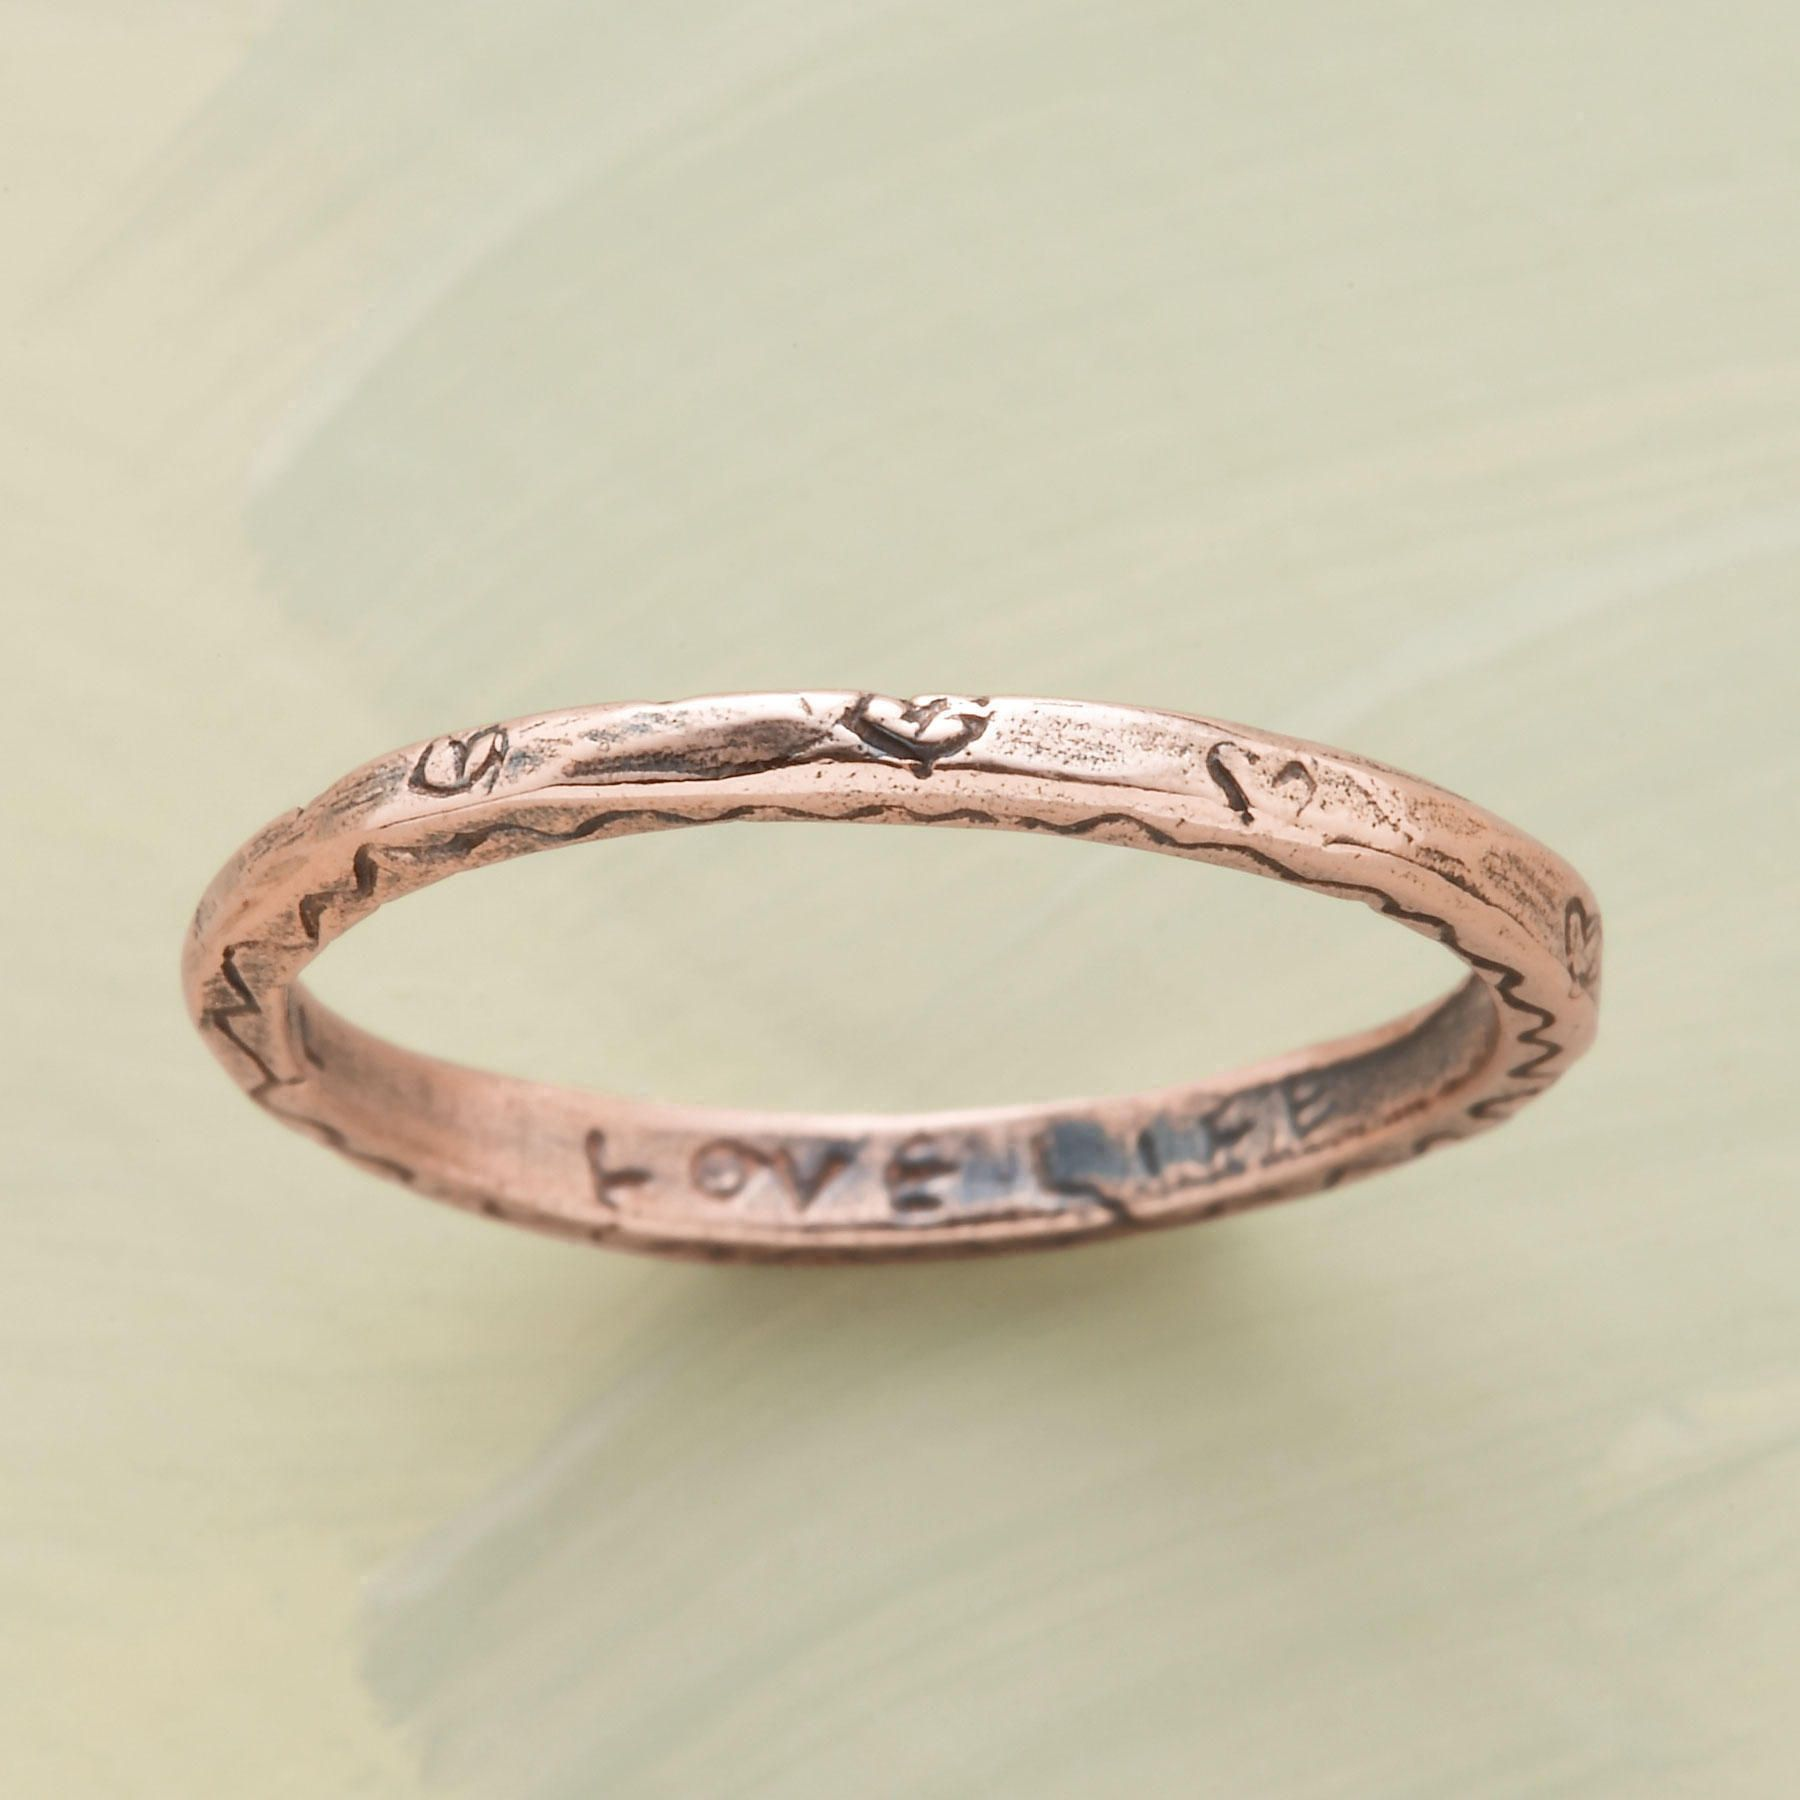 ROSE GOLD VITALITY RING Encircled with hearts our exclusive